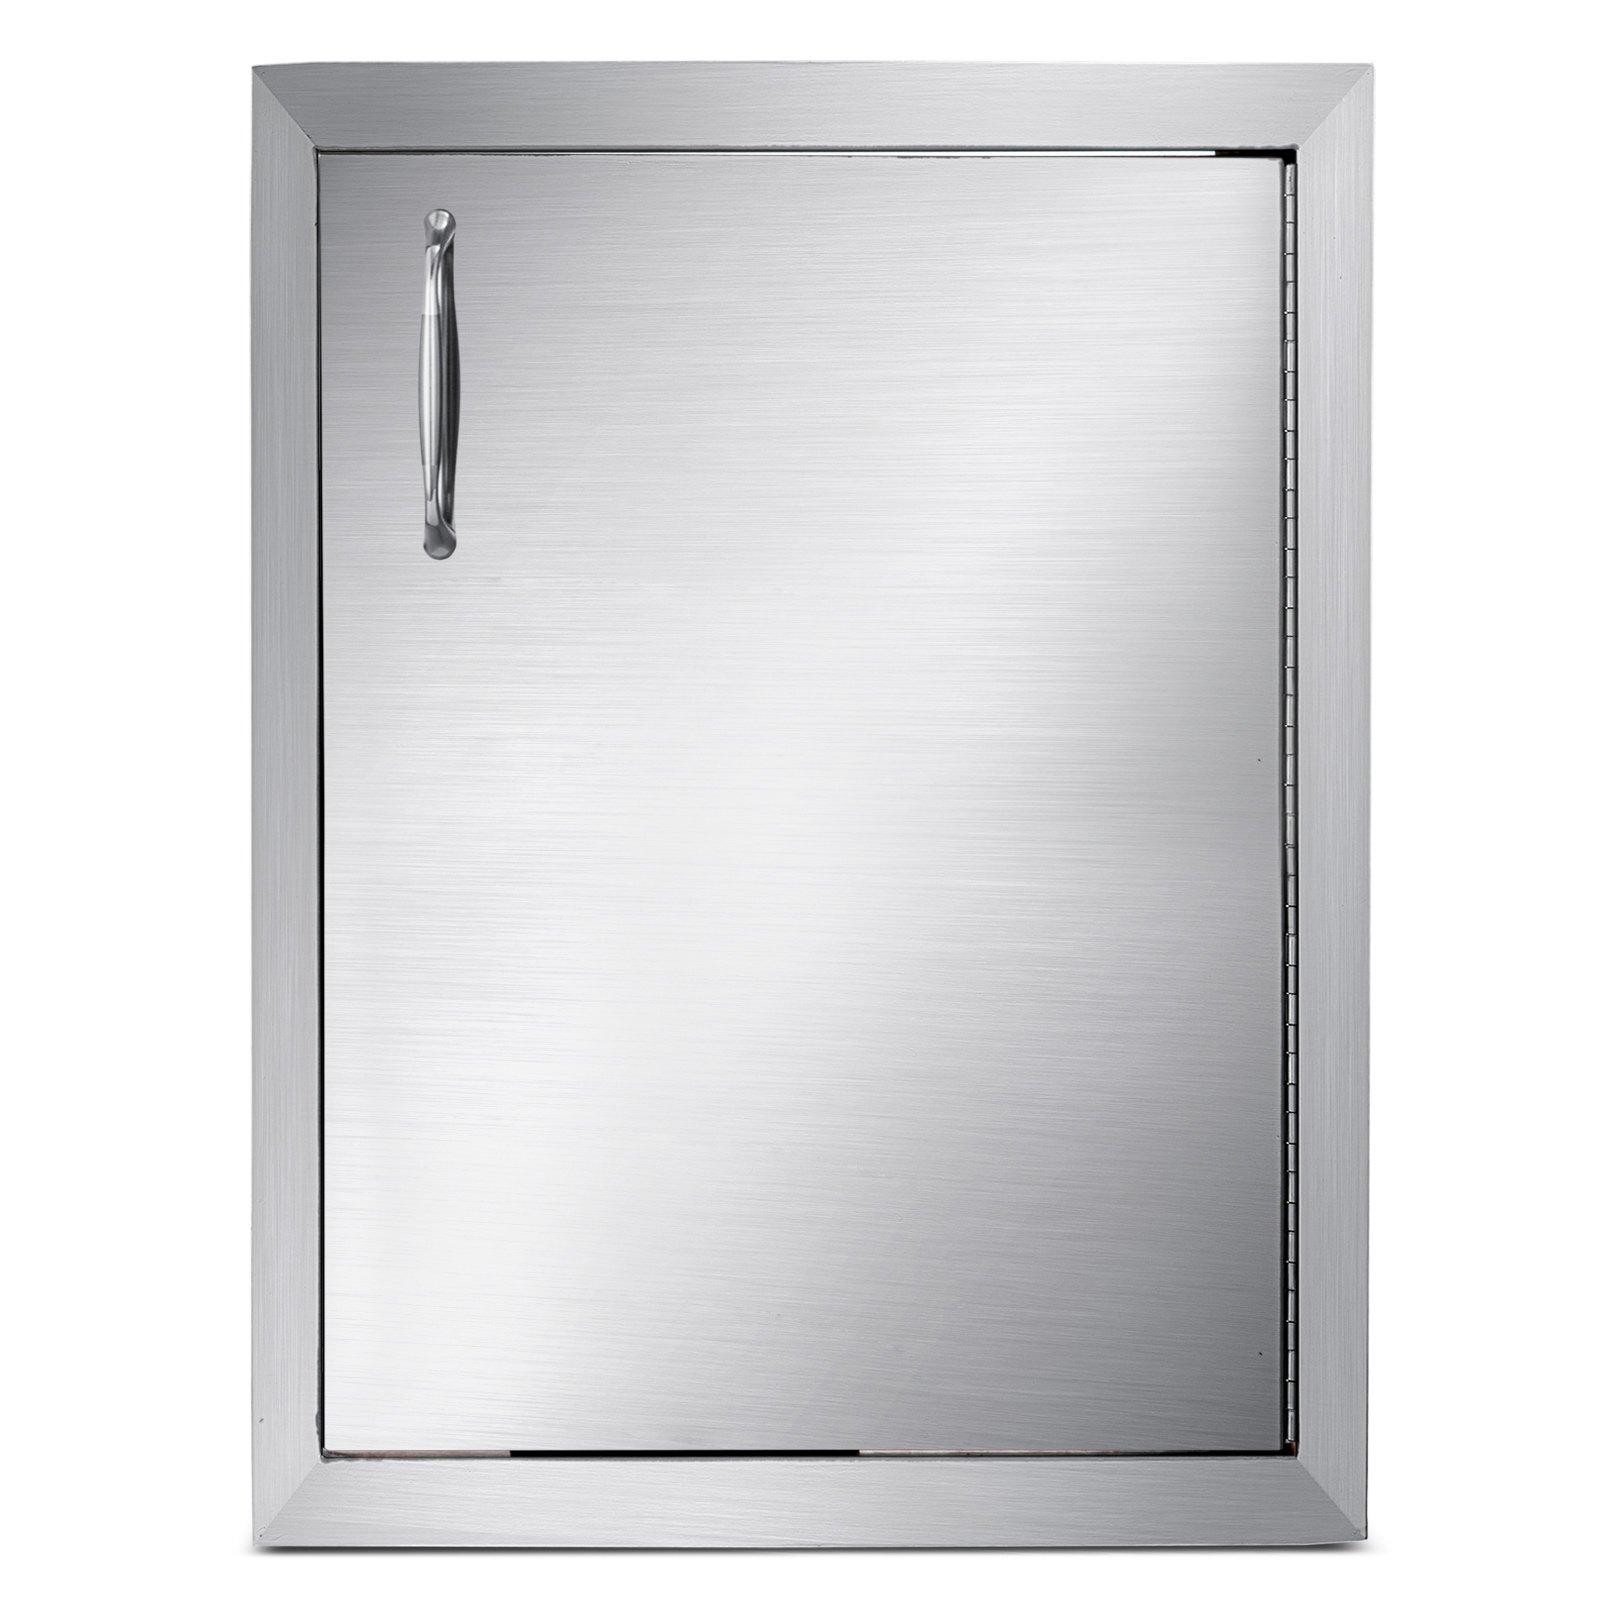 Mophorn Outdoor Kitchen Access Door 16''x 22'' Single Wall Construction Stainless Steel Flush Mount for BBQ Island, 16inch x 22inch,